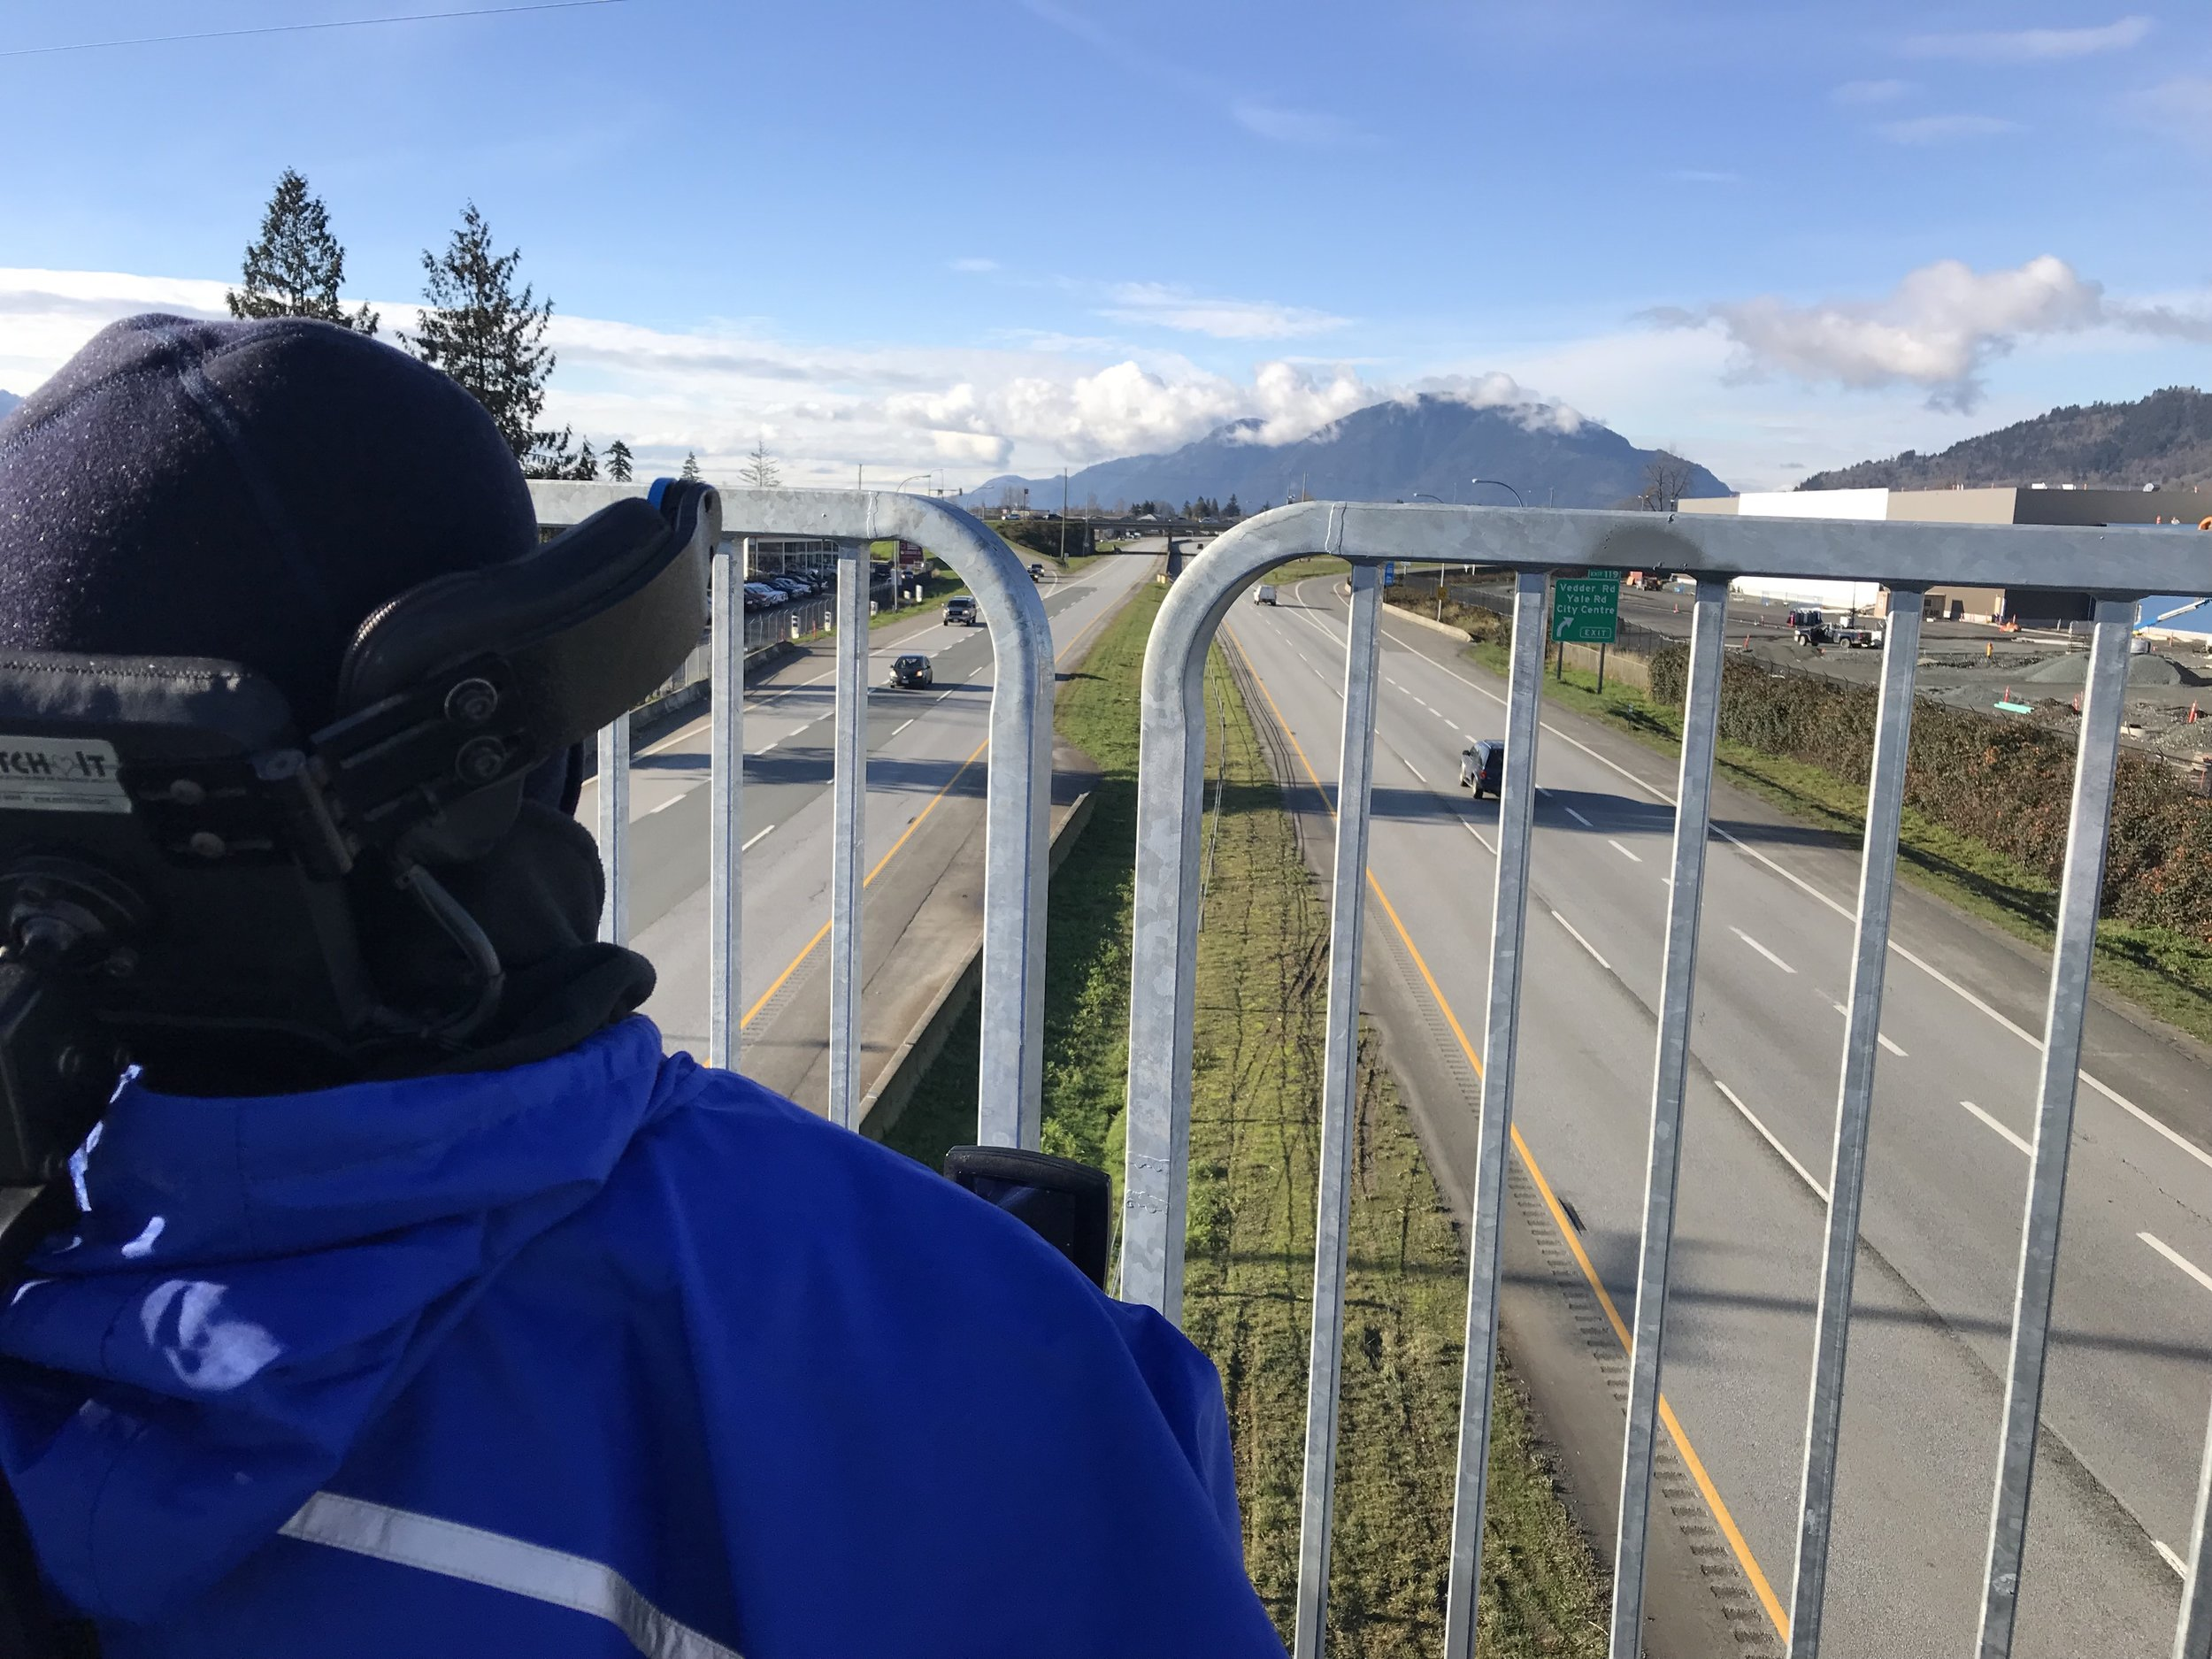 Jim overlooking the Trans Canada Highway on the newly installed pedestrian bridge